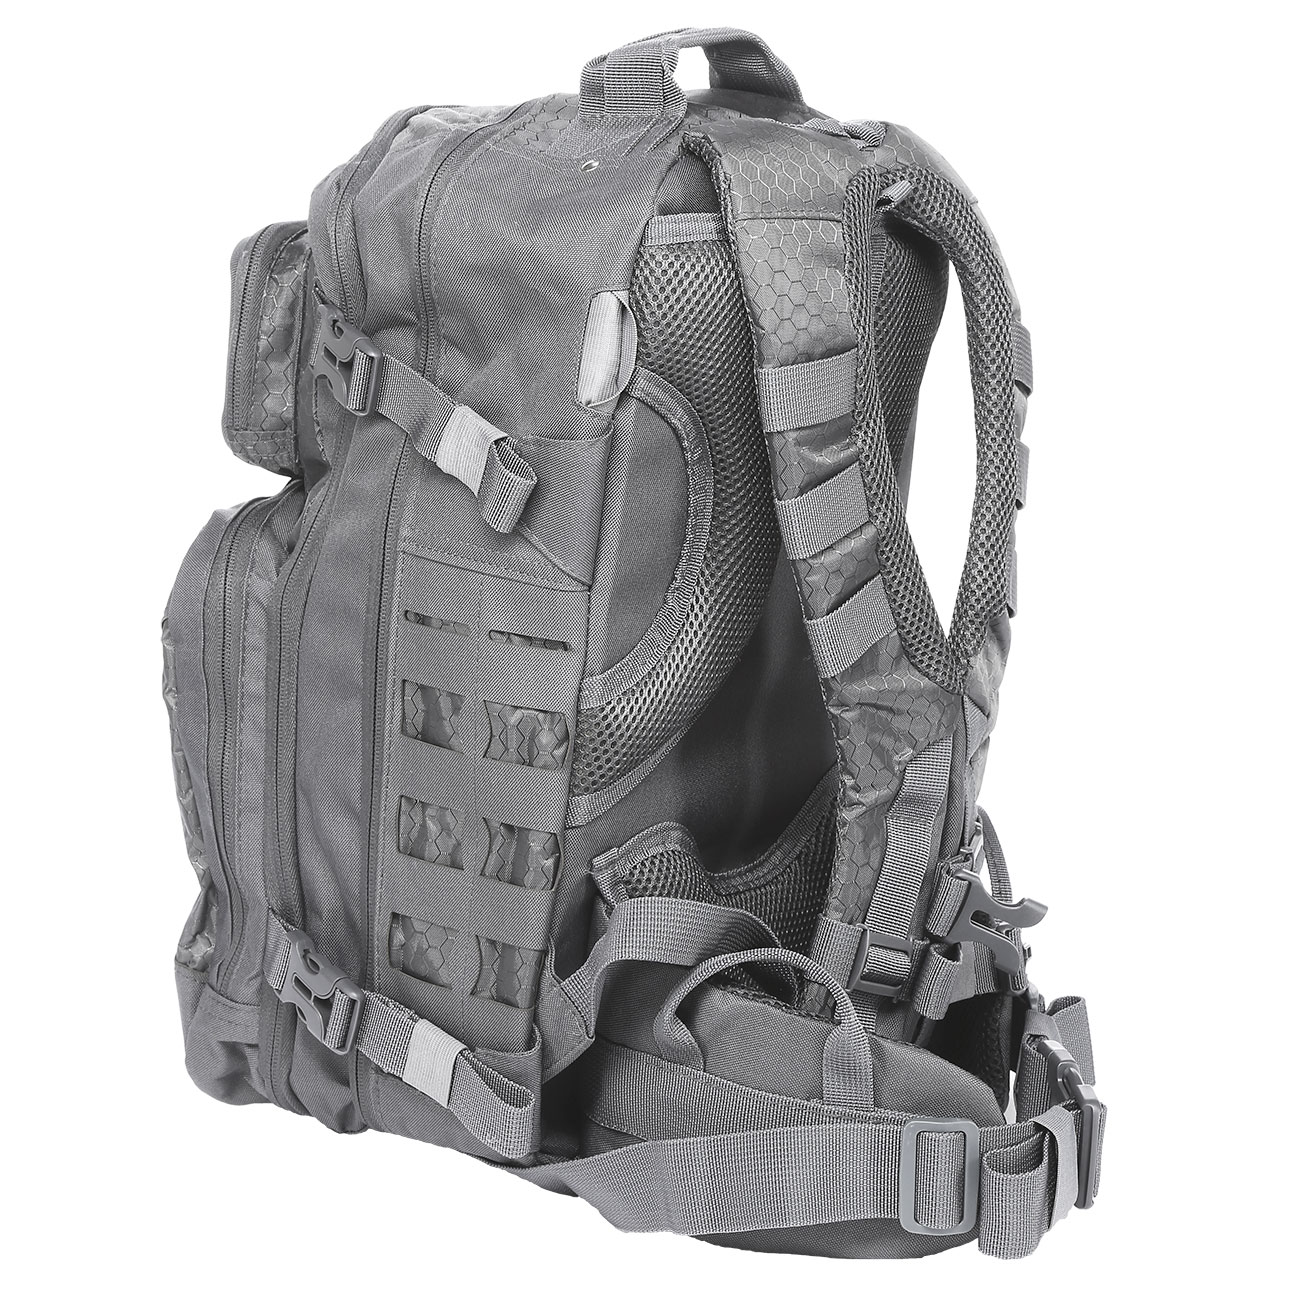 MFH Rucksack Operation I 30 Liter urban grau 3